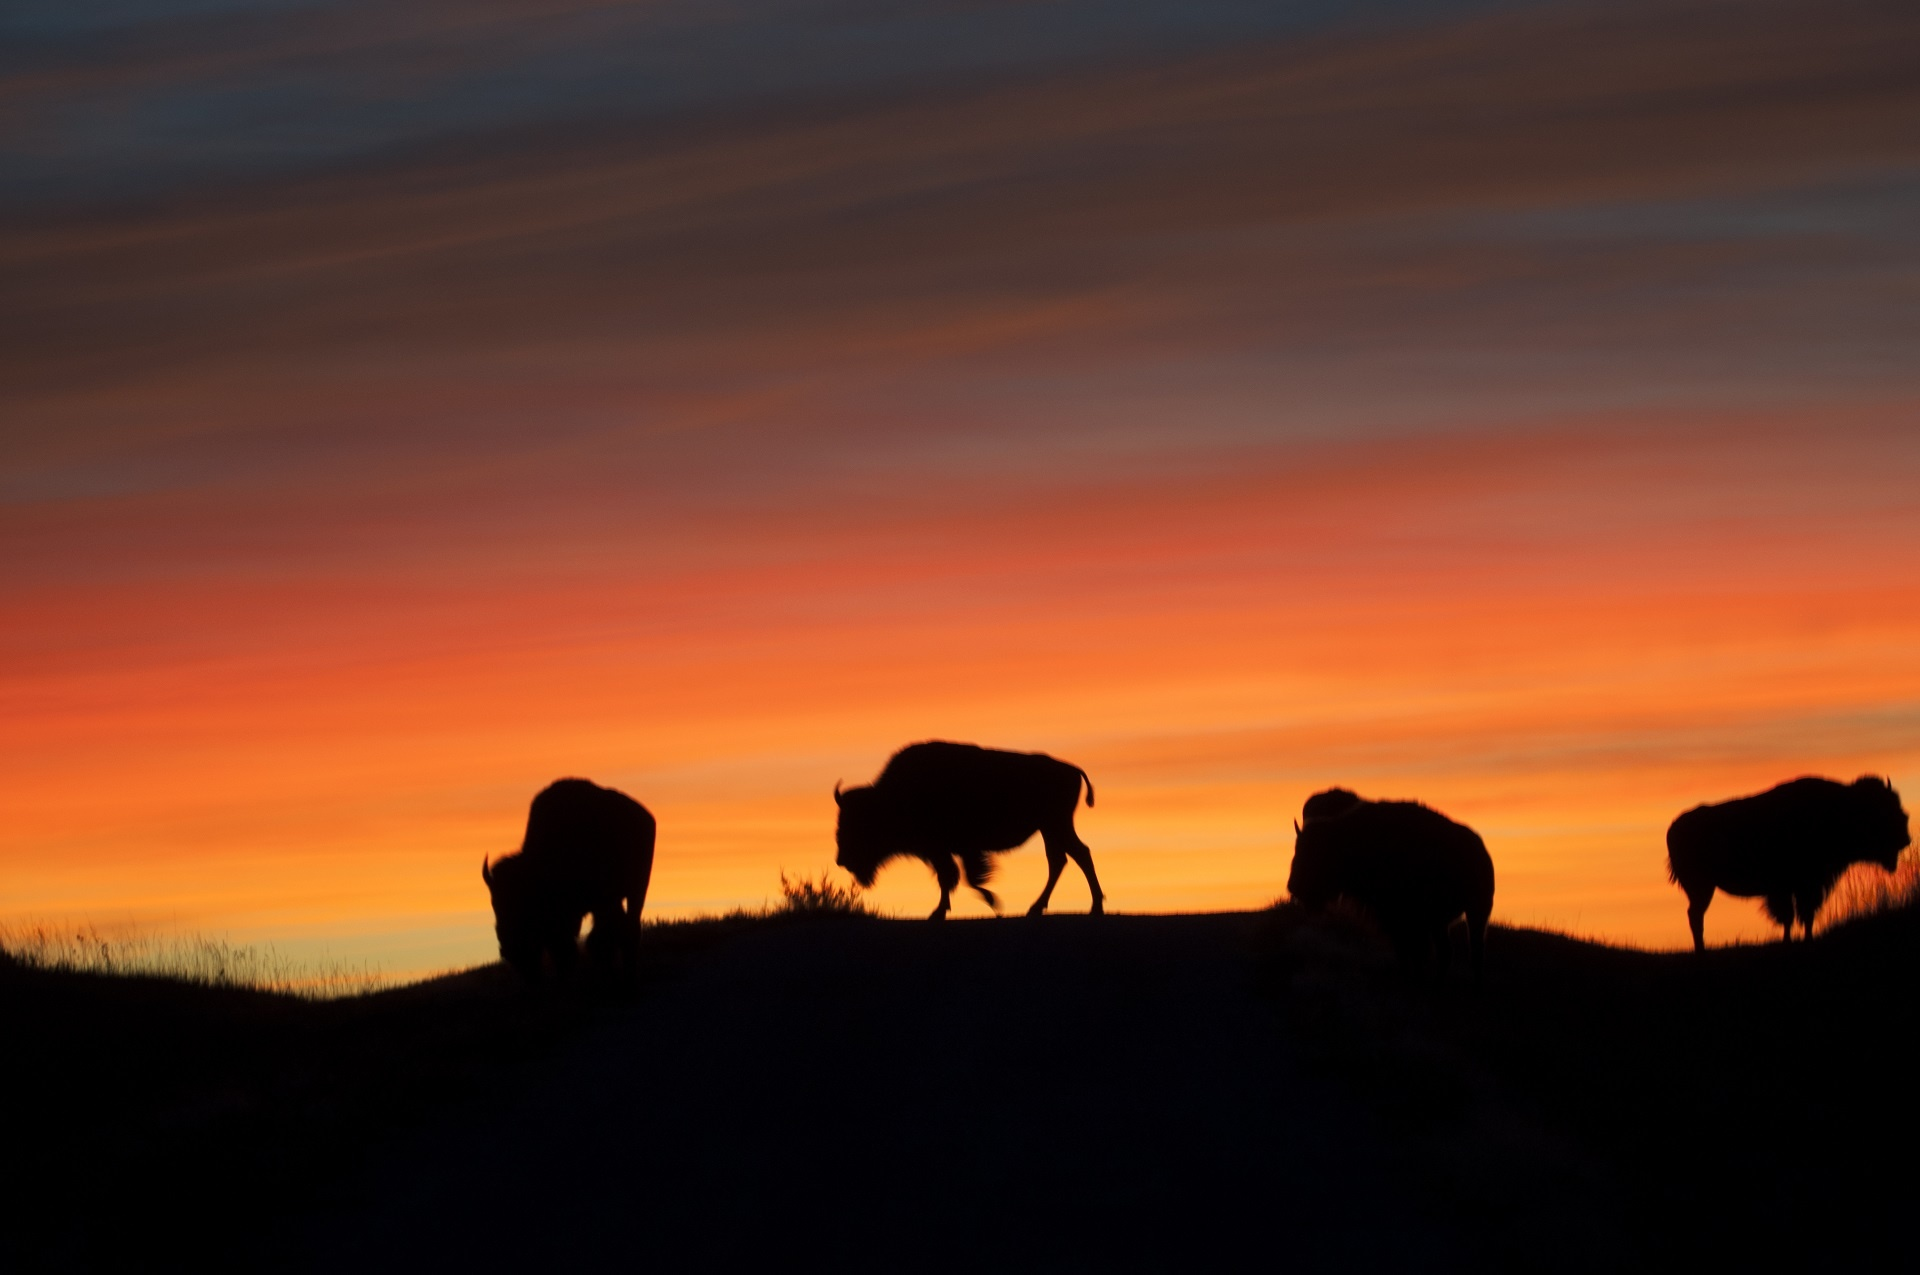 Desert Landscape Wallpaper Hd Bison Buffalo At Sunrise Free Stock Photo Public Domain